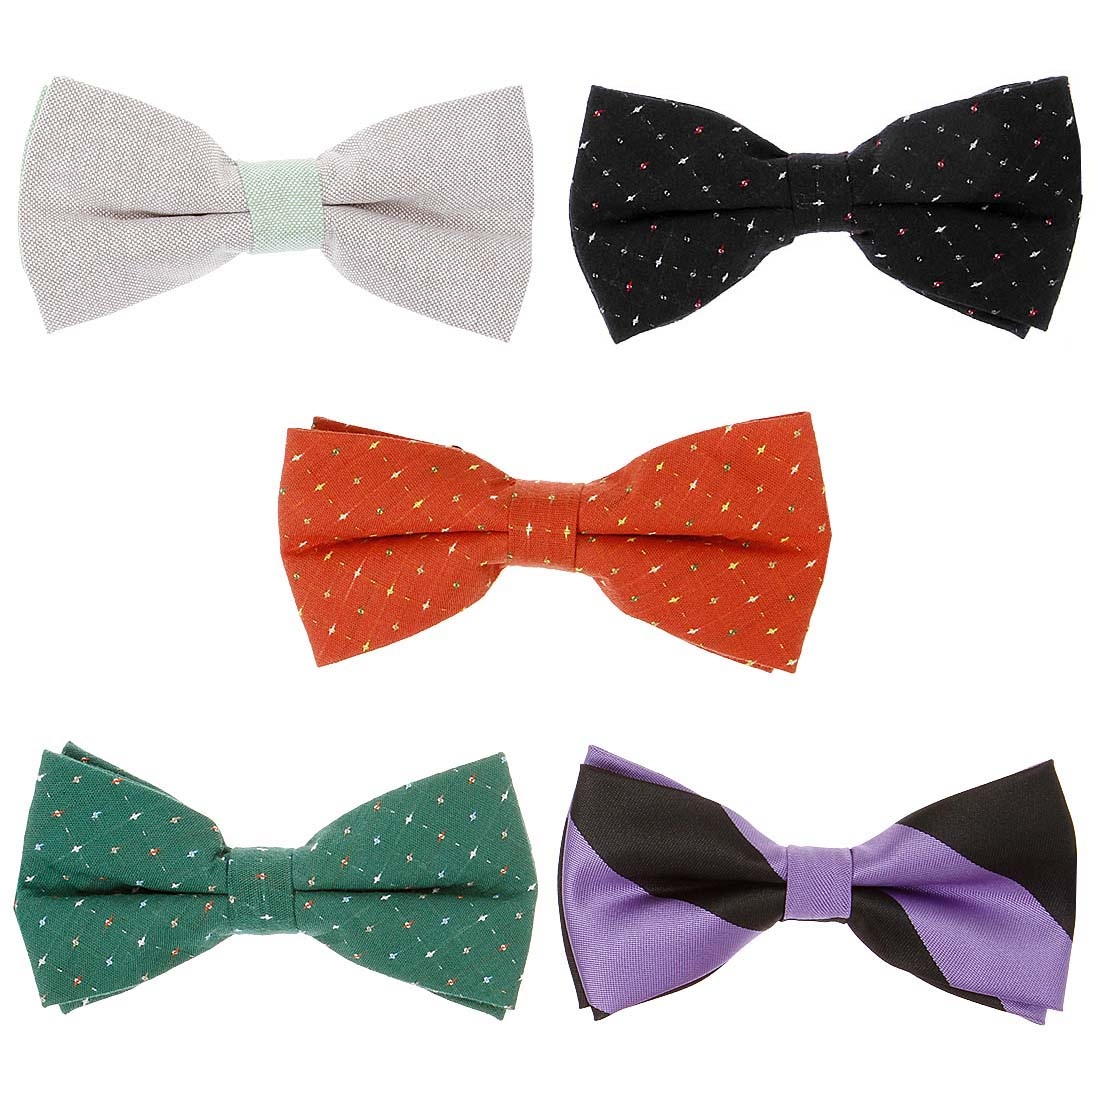 Bundle Monster 5pc Mixed Design Adjustable Pre-Tied Mens Neck Tie Bowtie Sets